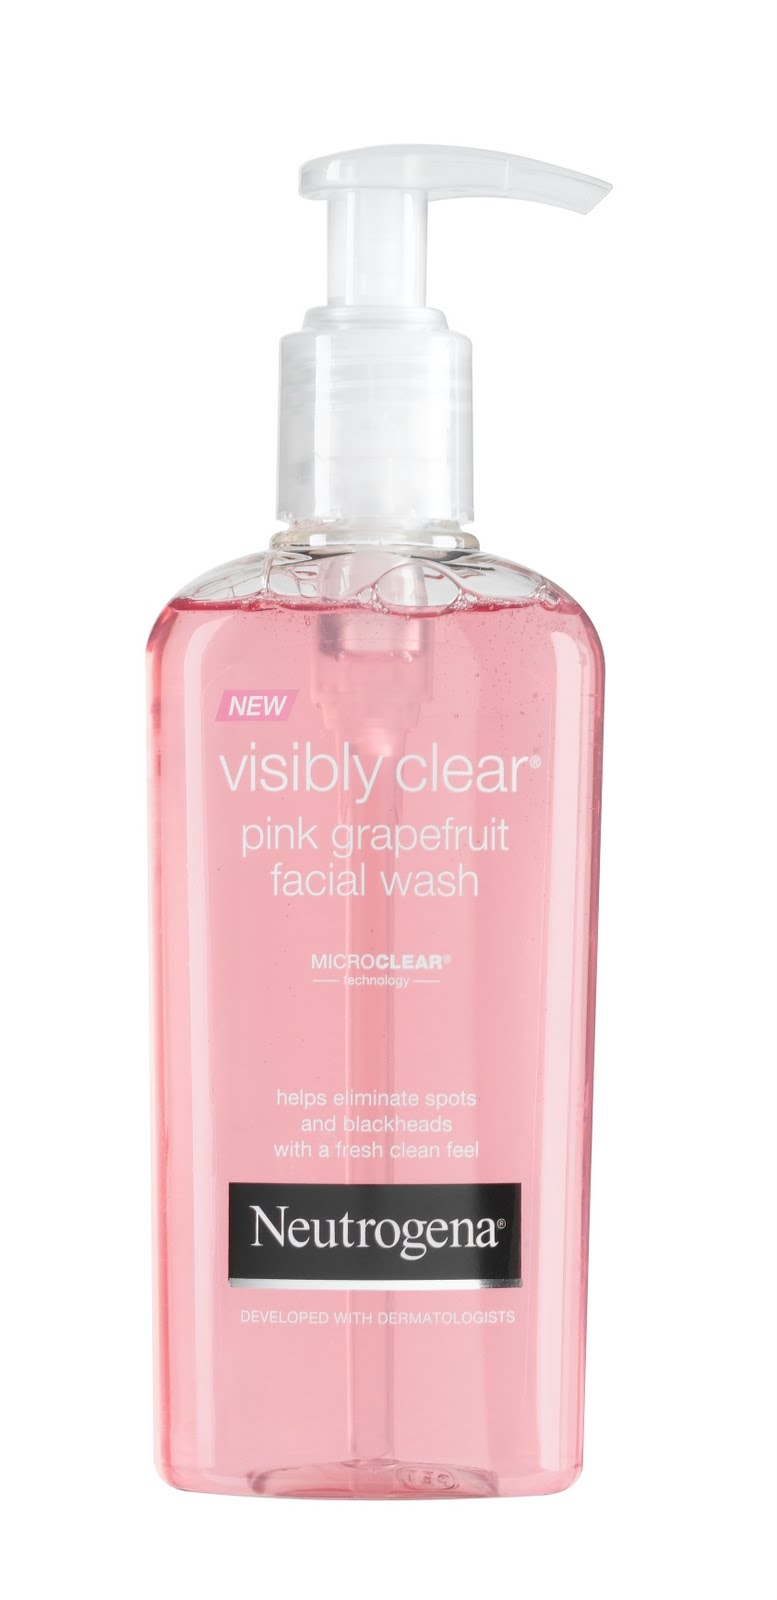 Neutrogena Pink Grapefruit Facial Wash